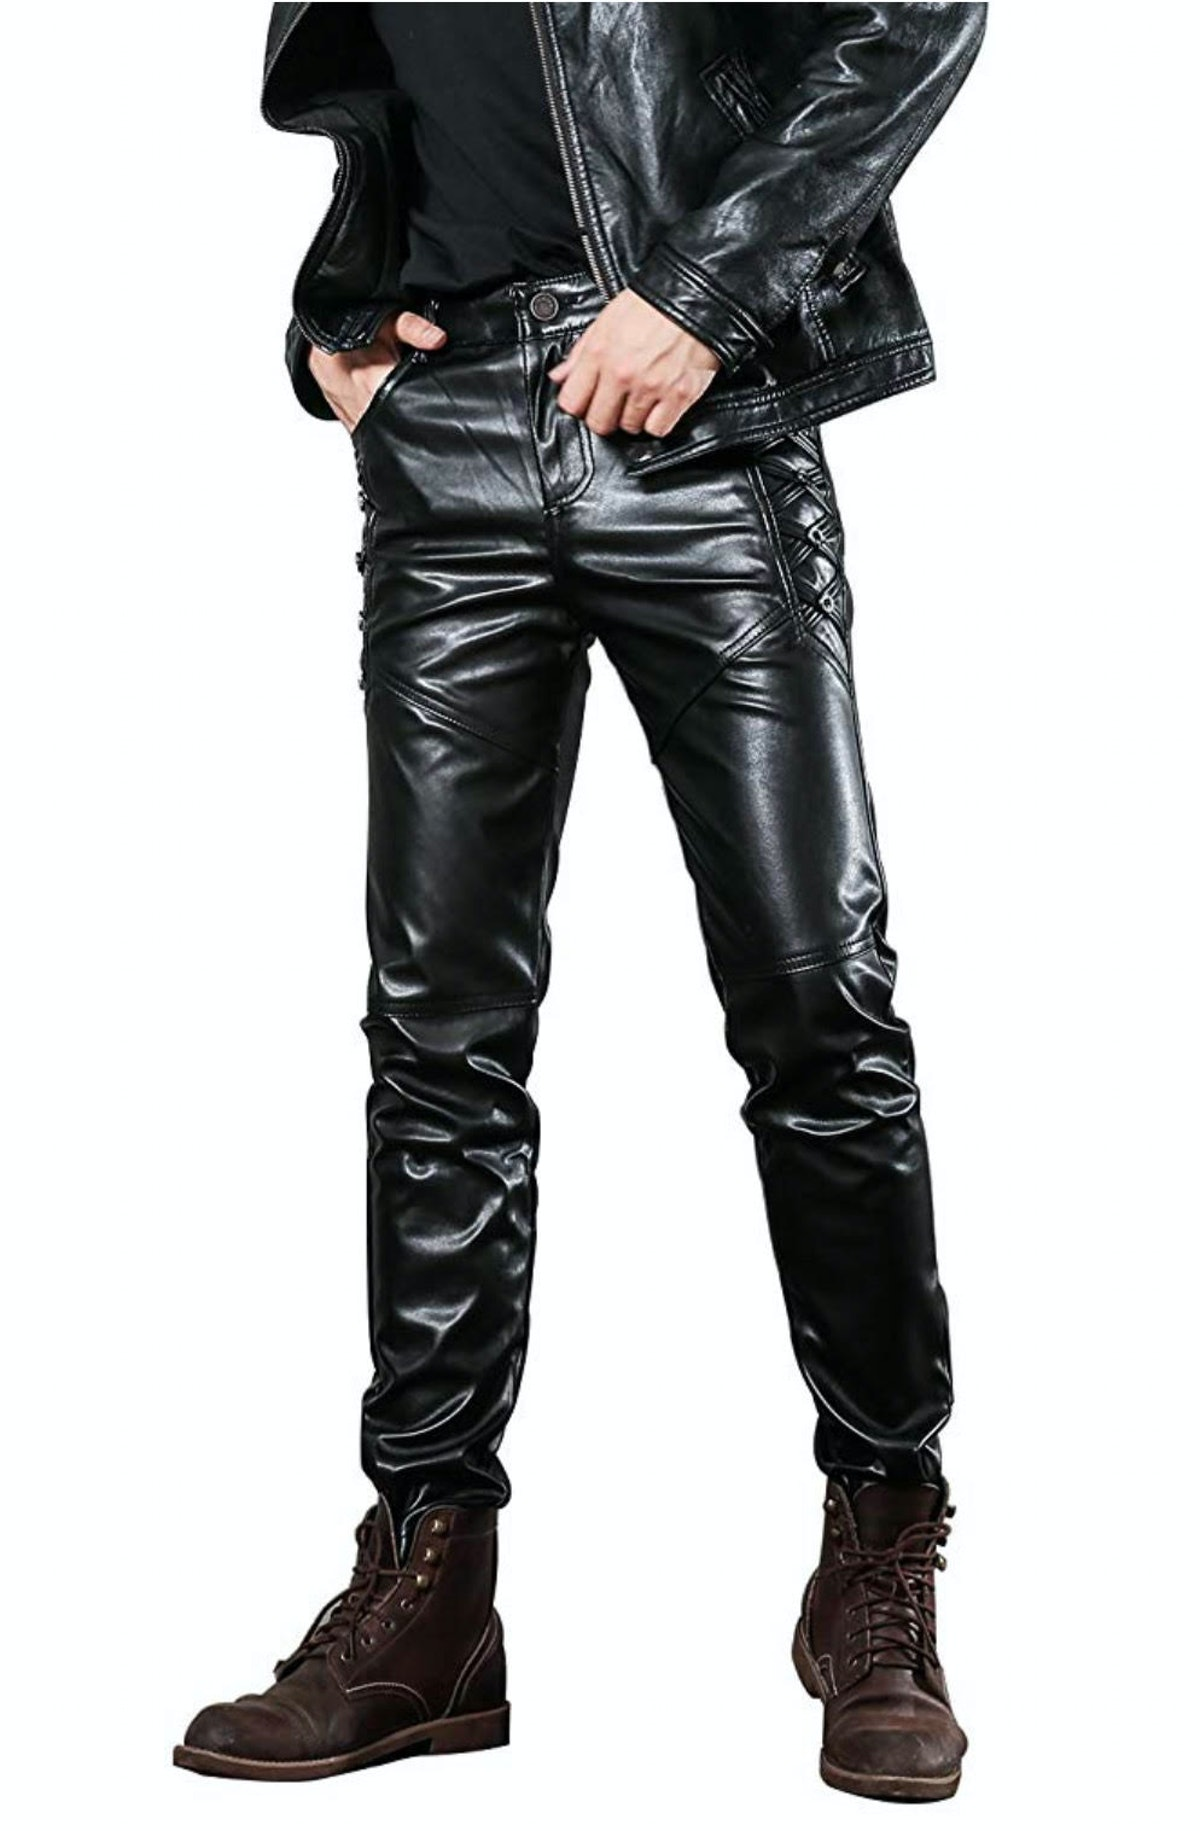 Idopy Mean's Black Slim Fit Leather Pants